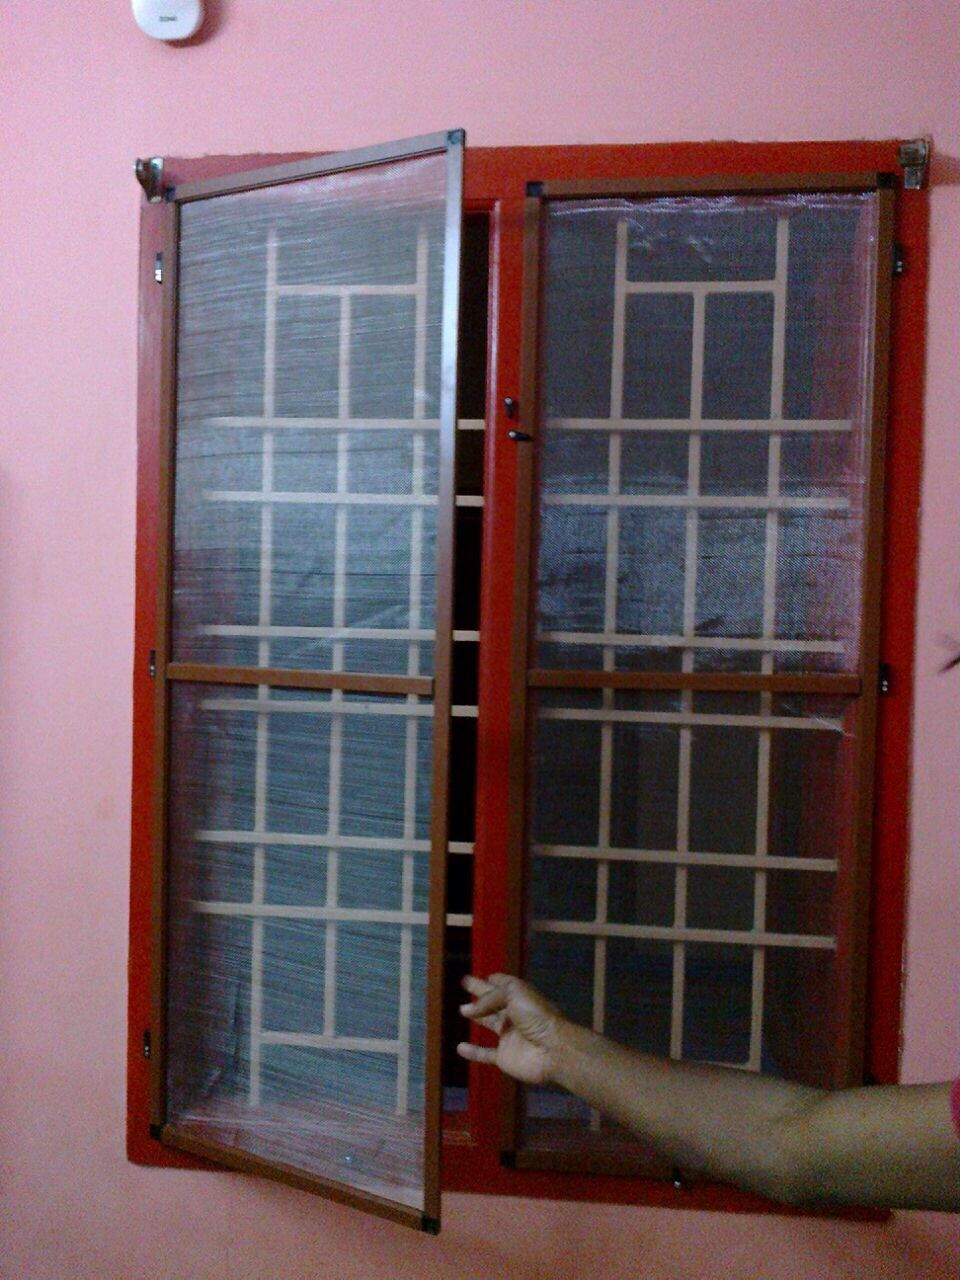 Window mosquito net dealers in alwarpet diy house things for Window insect screen